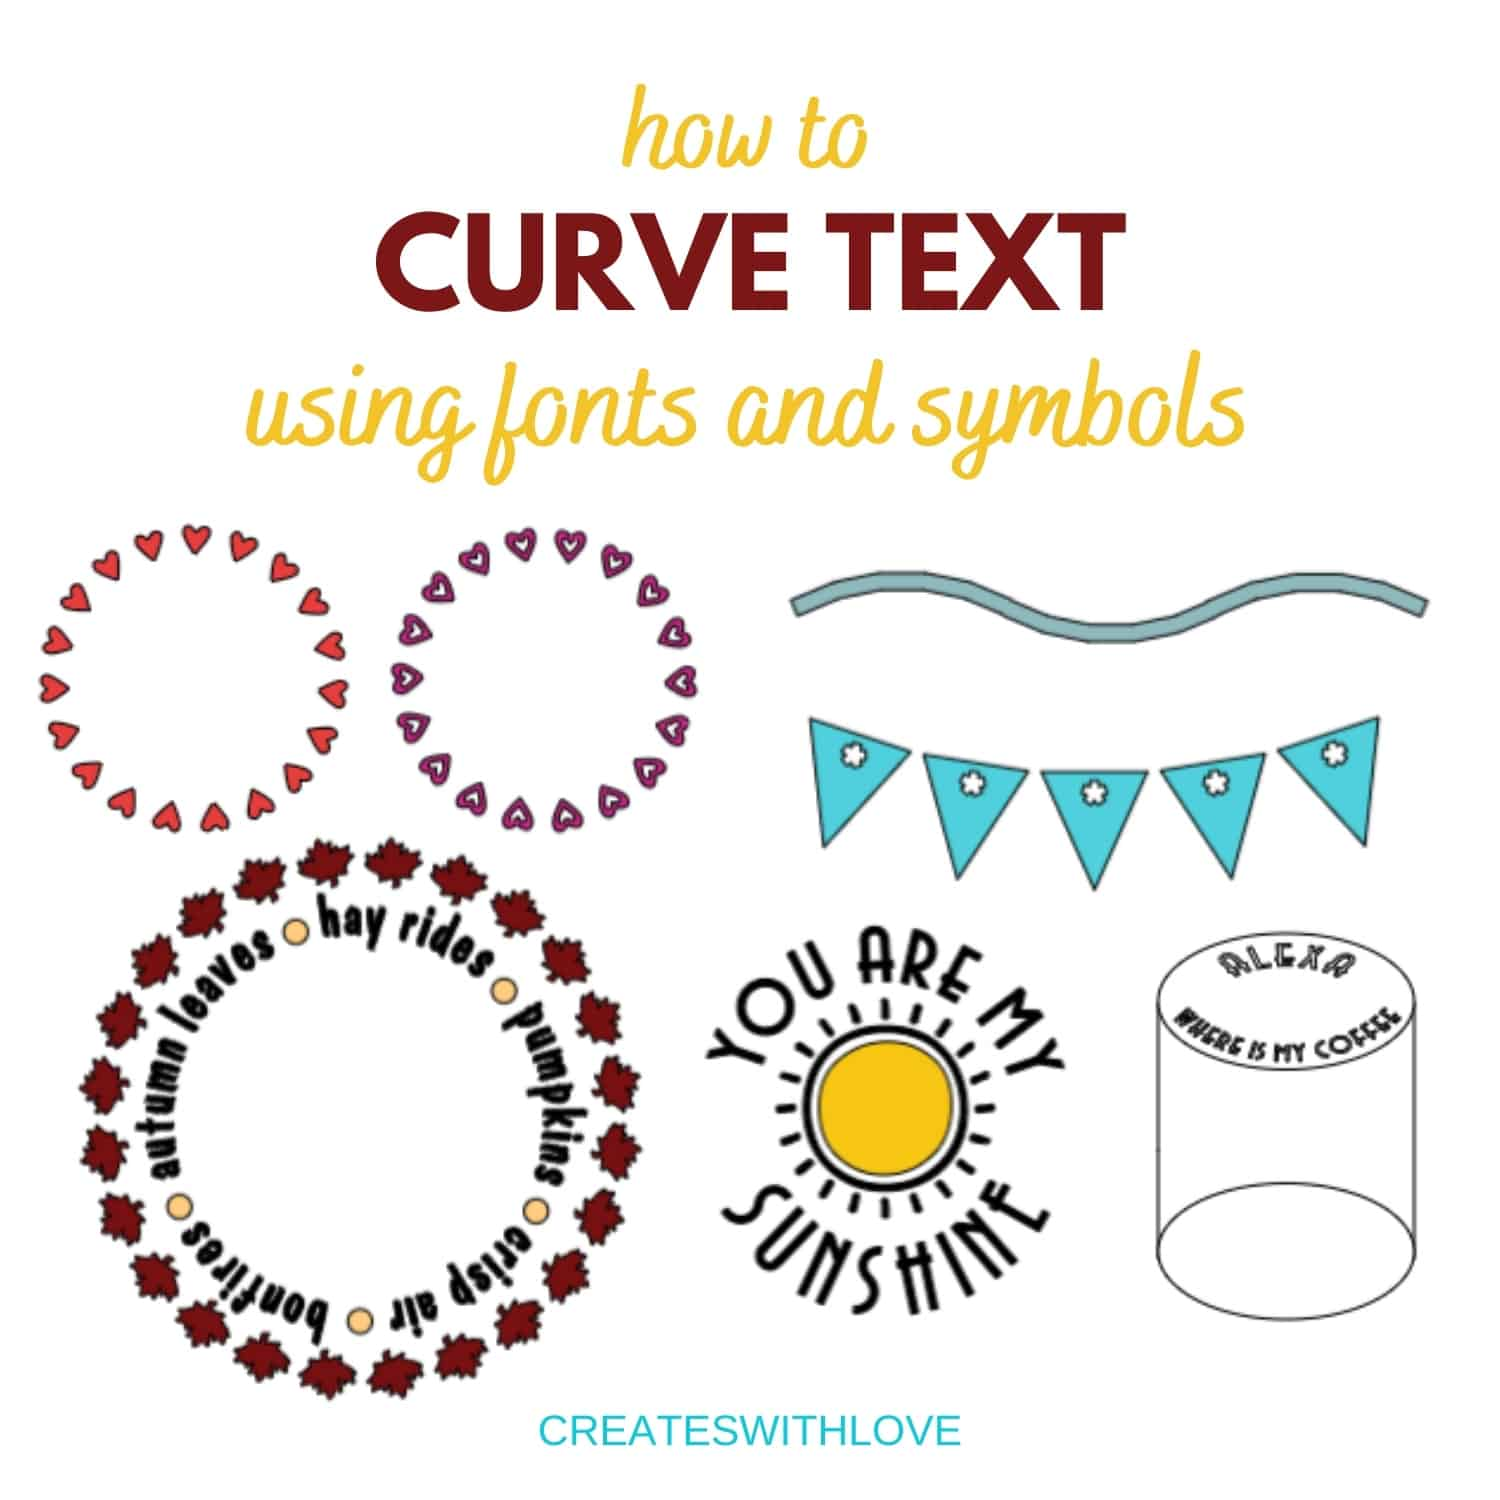 curved hearts that form a circle and banner flags that are curved to show how to curve text using fonts and symbols.